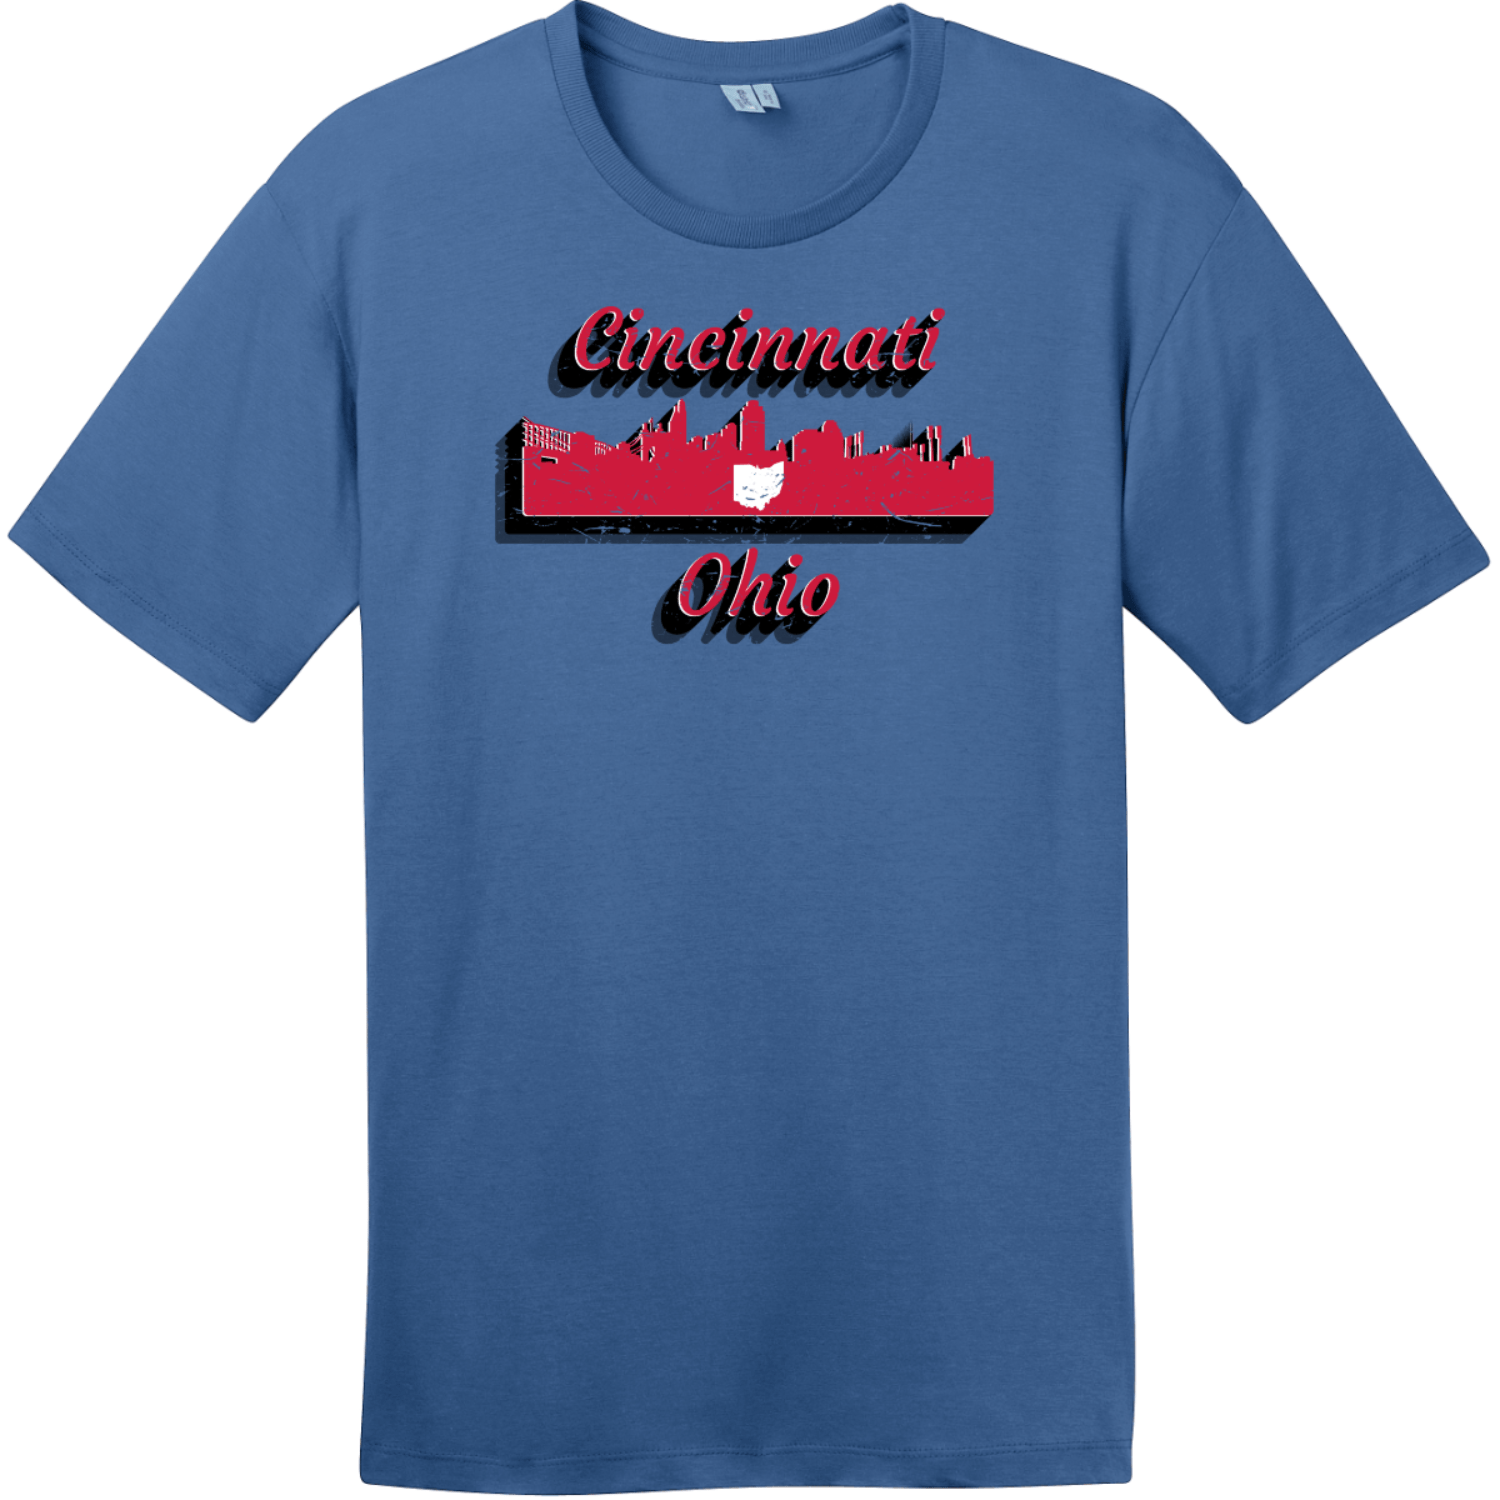 Cincinnati Ohio Skyline Retro T-Shirt Maritime Blue District Perfect Weight Tee DT104